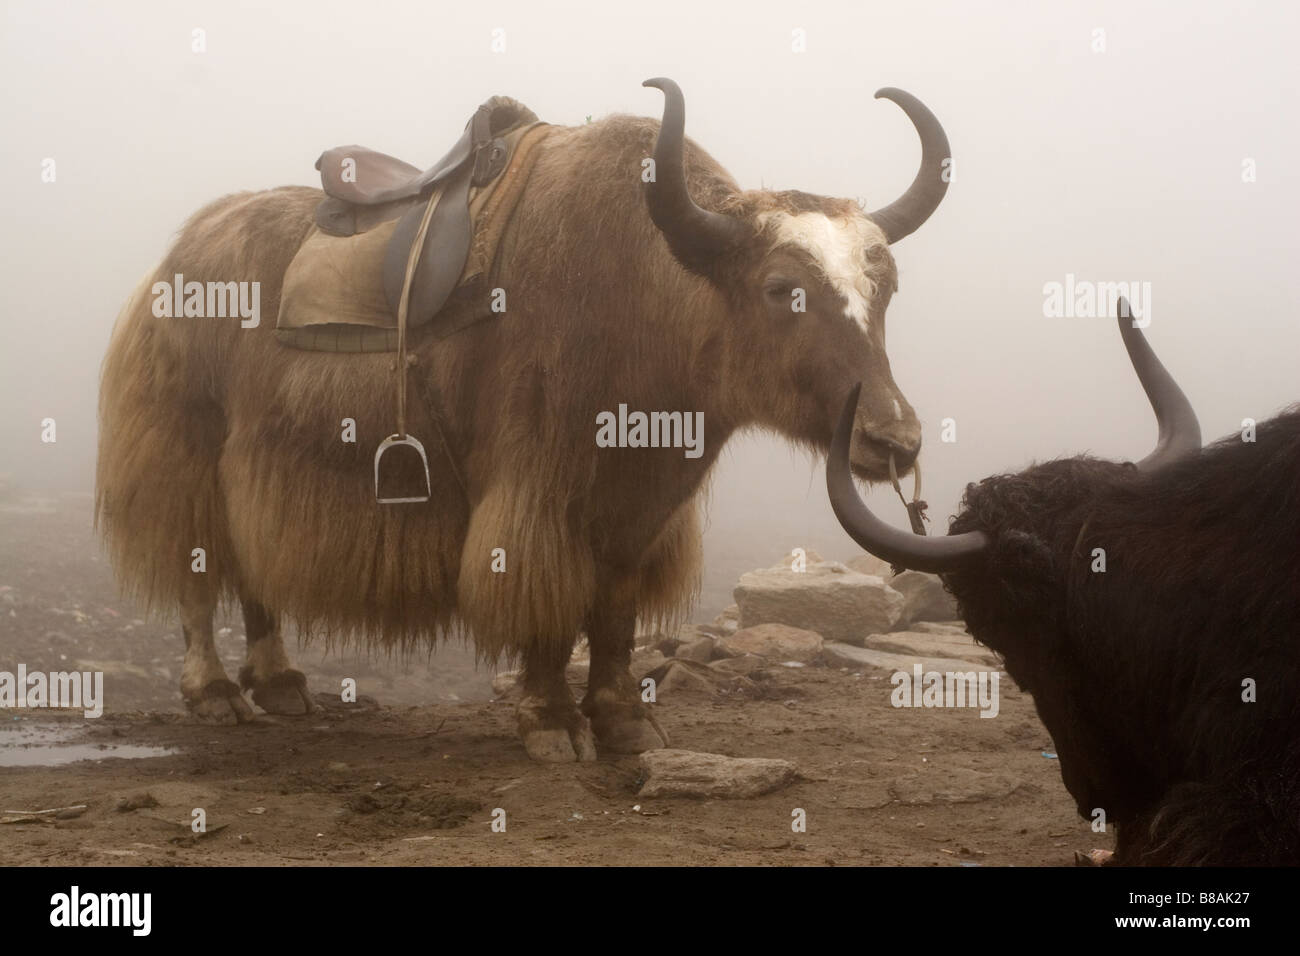 Yaks on the Rohtang Pass in Himachal Pradesh in northern India. - Stock Image